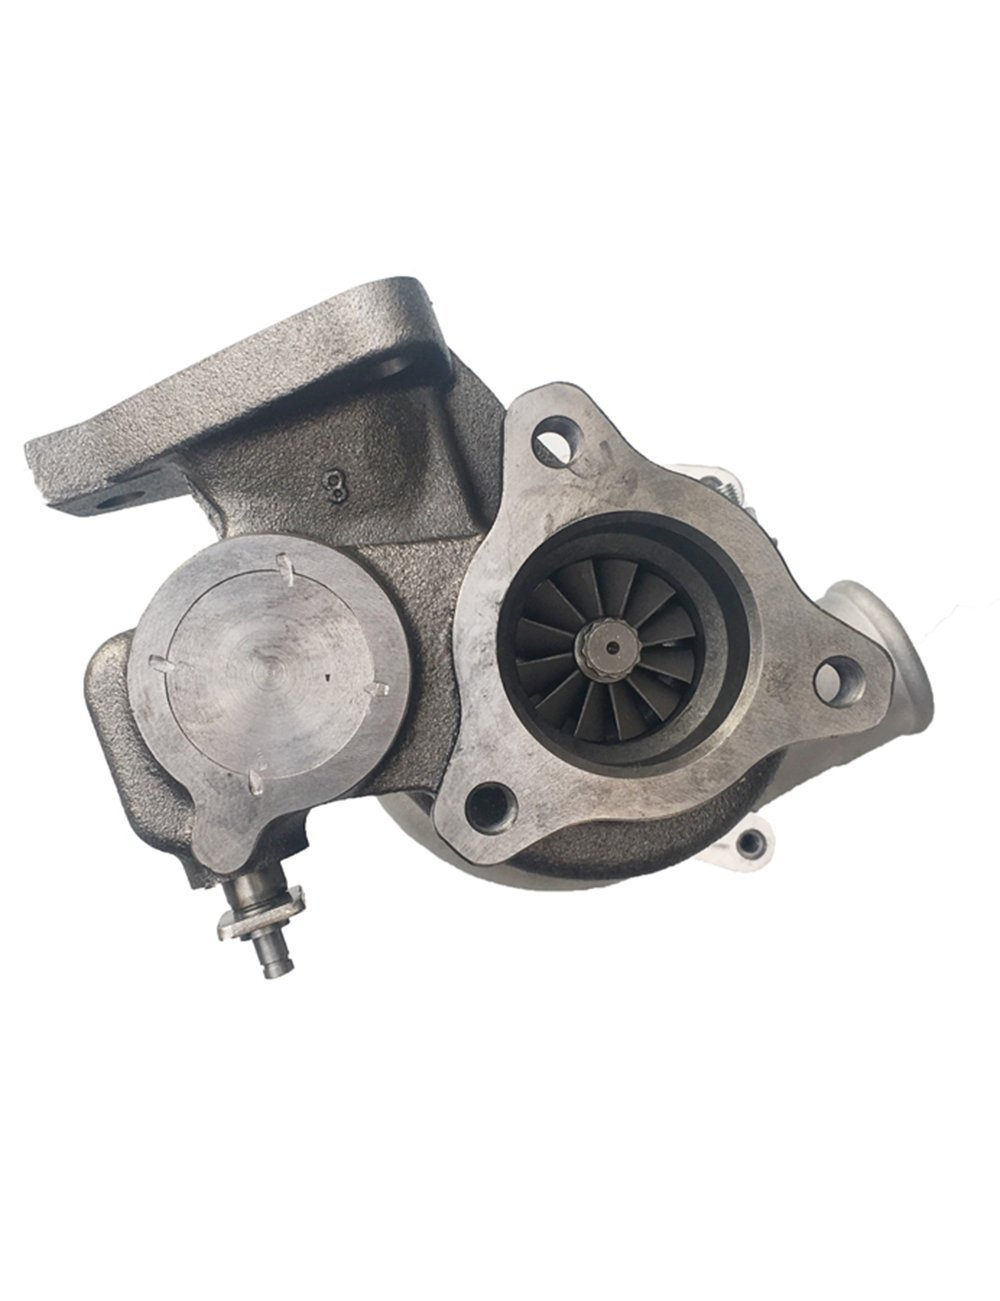 Turbo TD04 Turbocharger MD106720 49177-01510 for Mitsubishi Engine 4D56